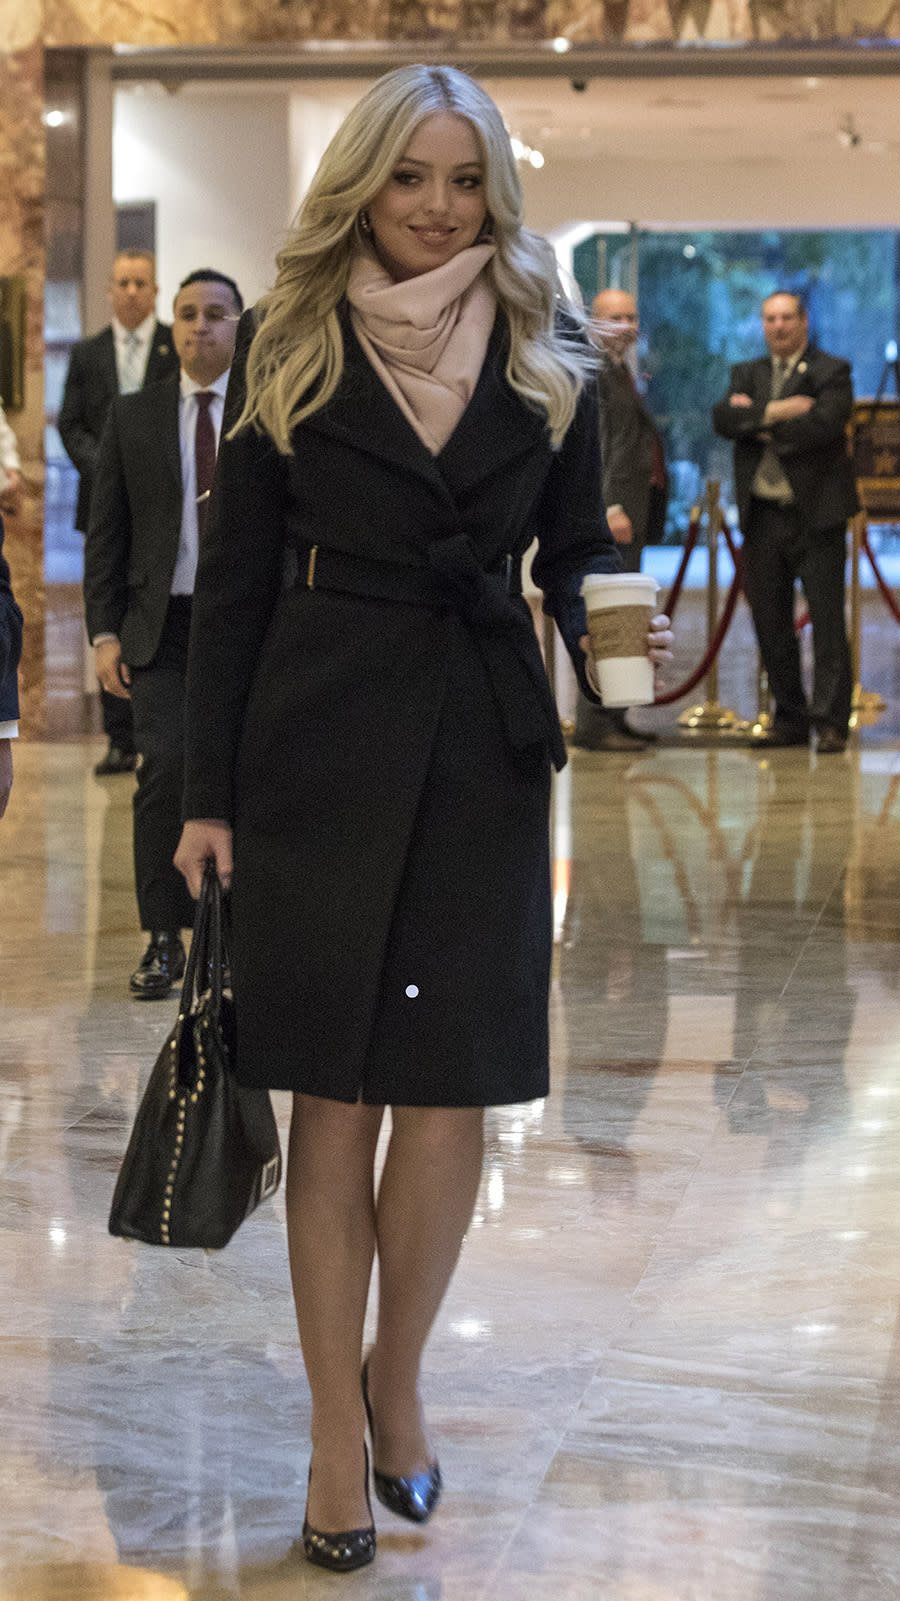 Tiffany Trump wore a jacket from the Ivanka Trump clothing line on January 19, 2017 in New York. (Photo: Sipa)